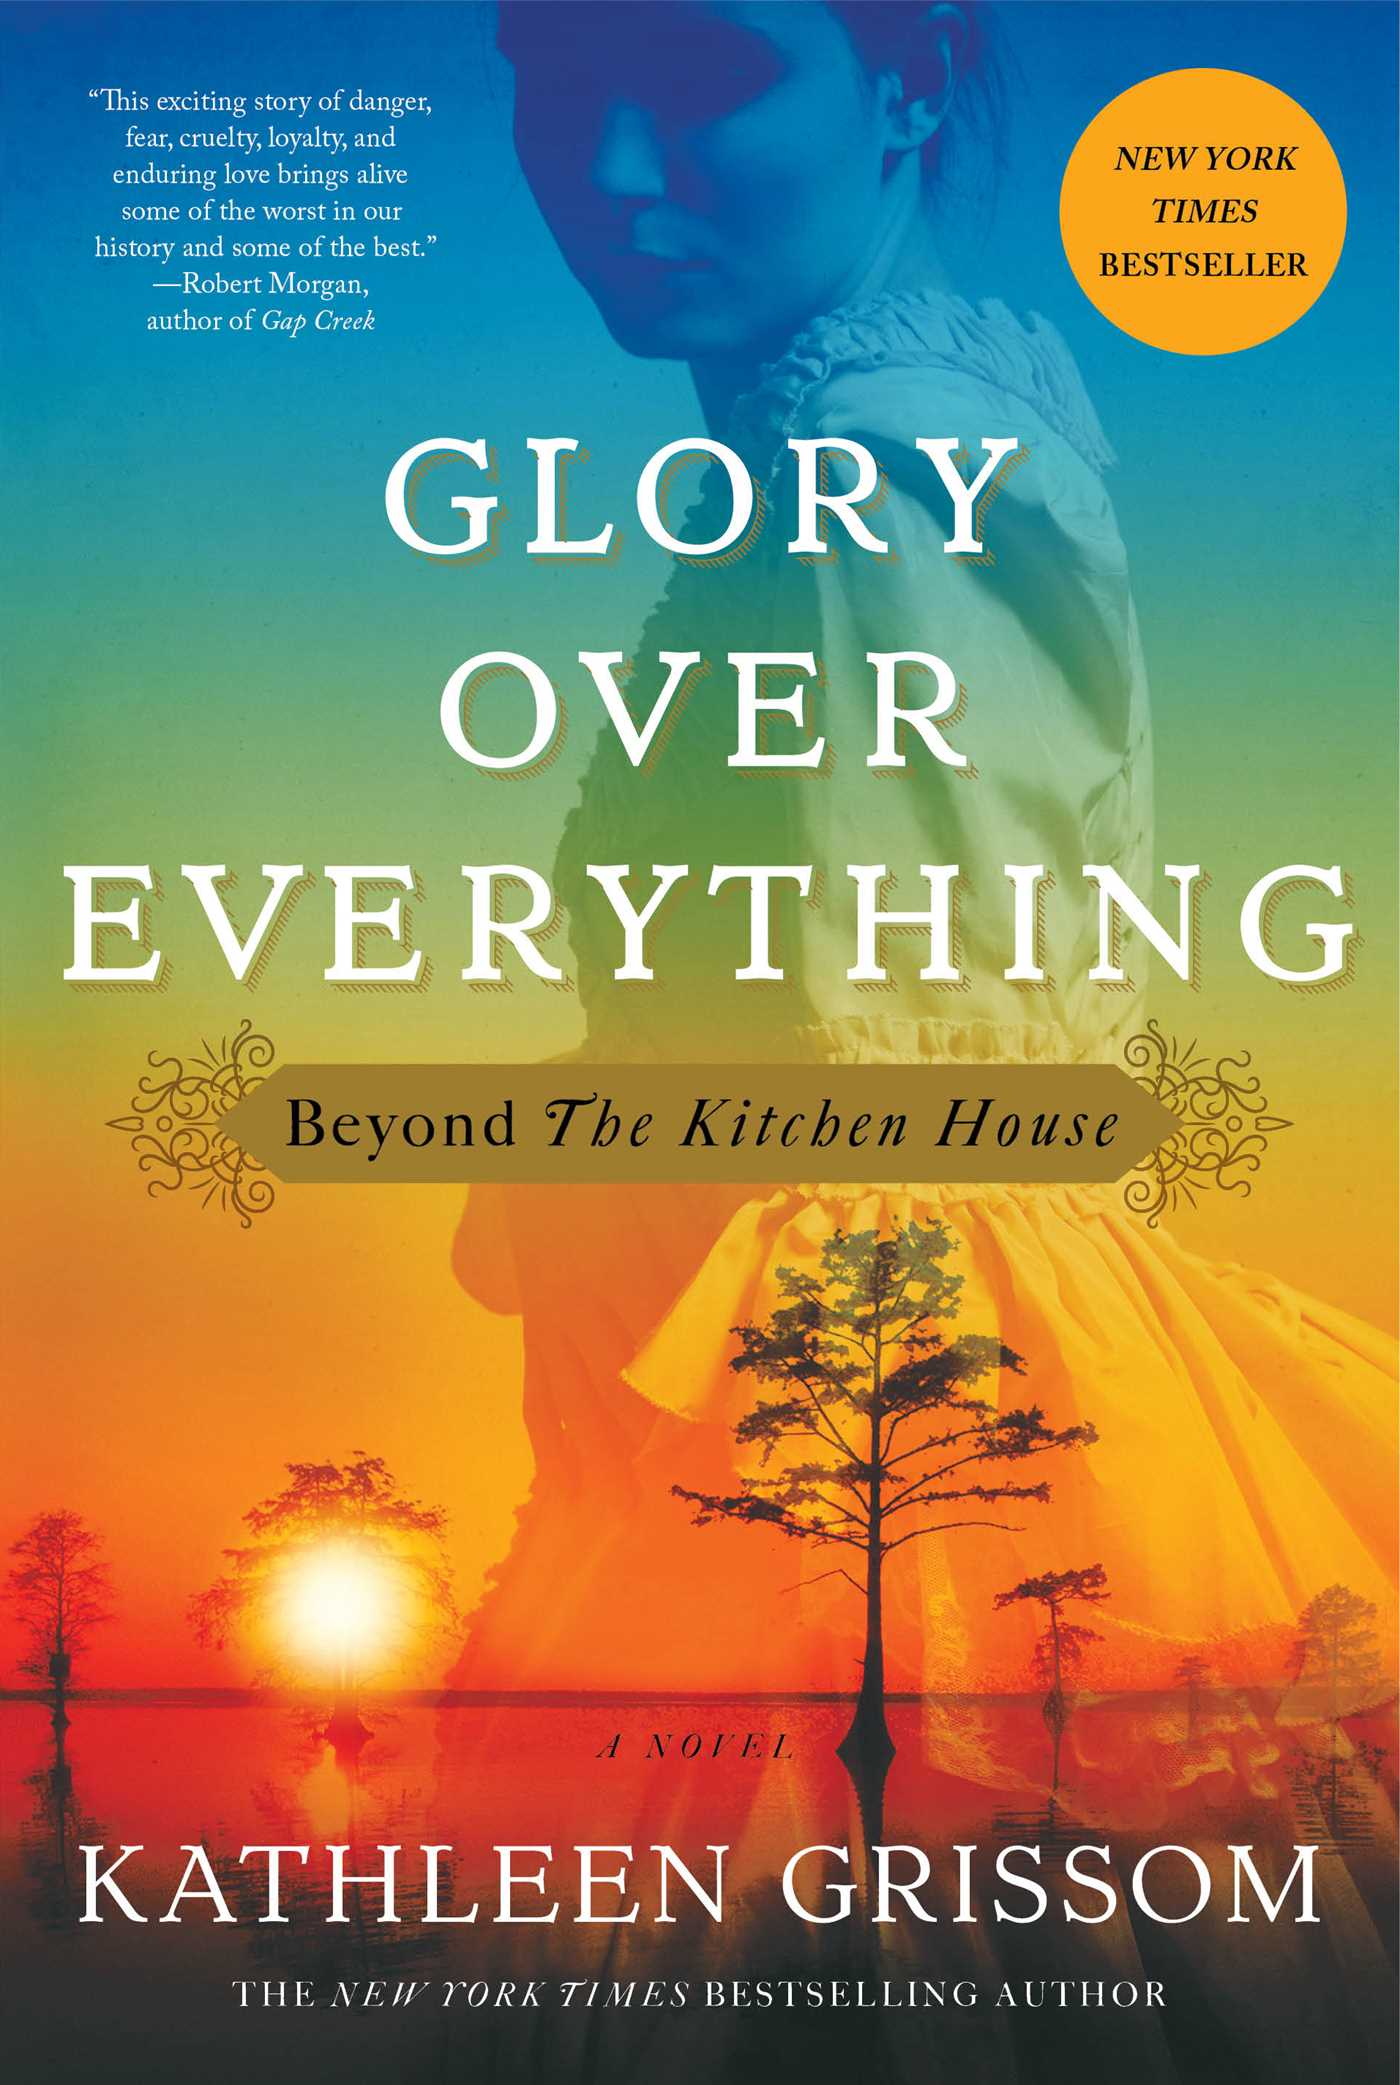 Glory over everything 9781476748443 hr